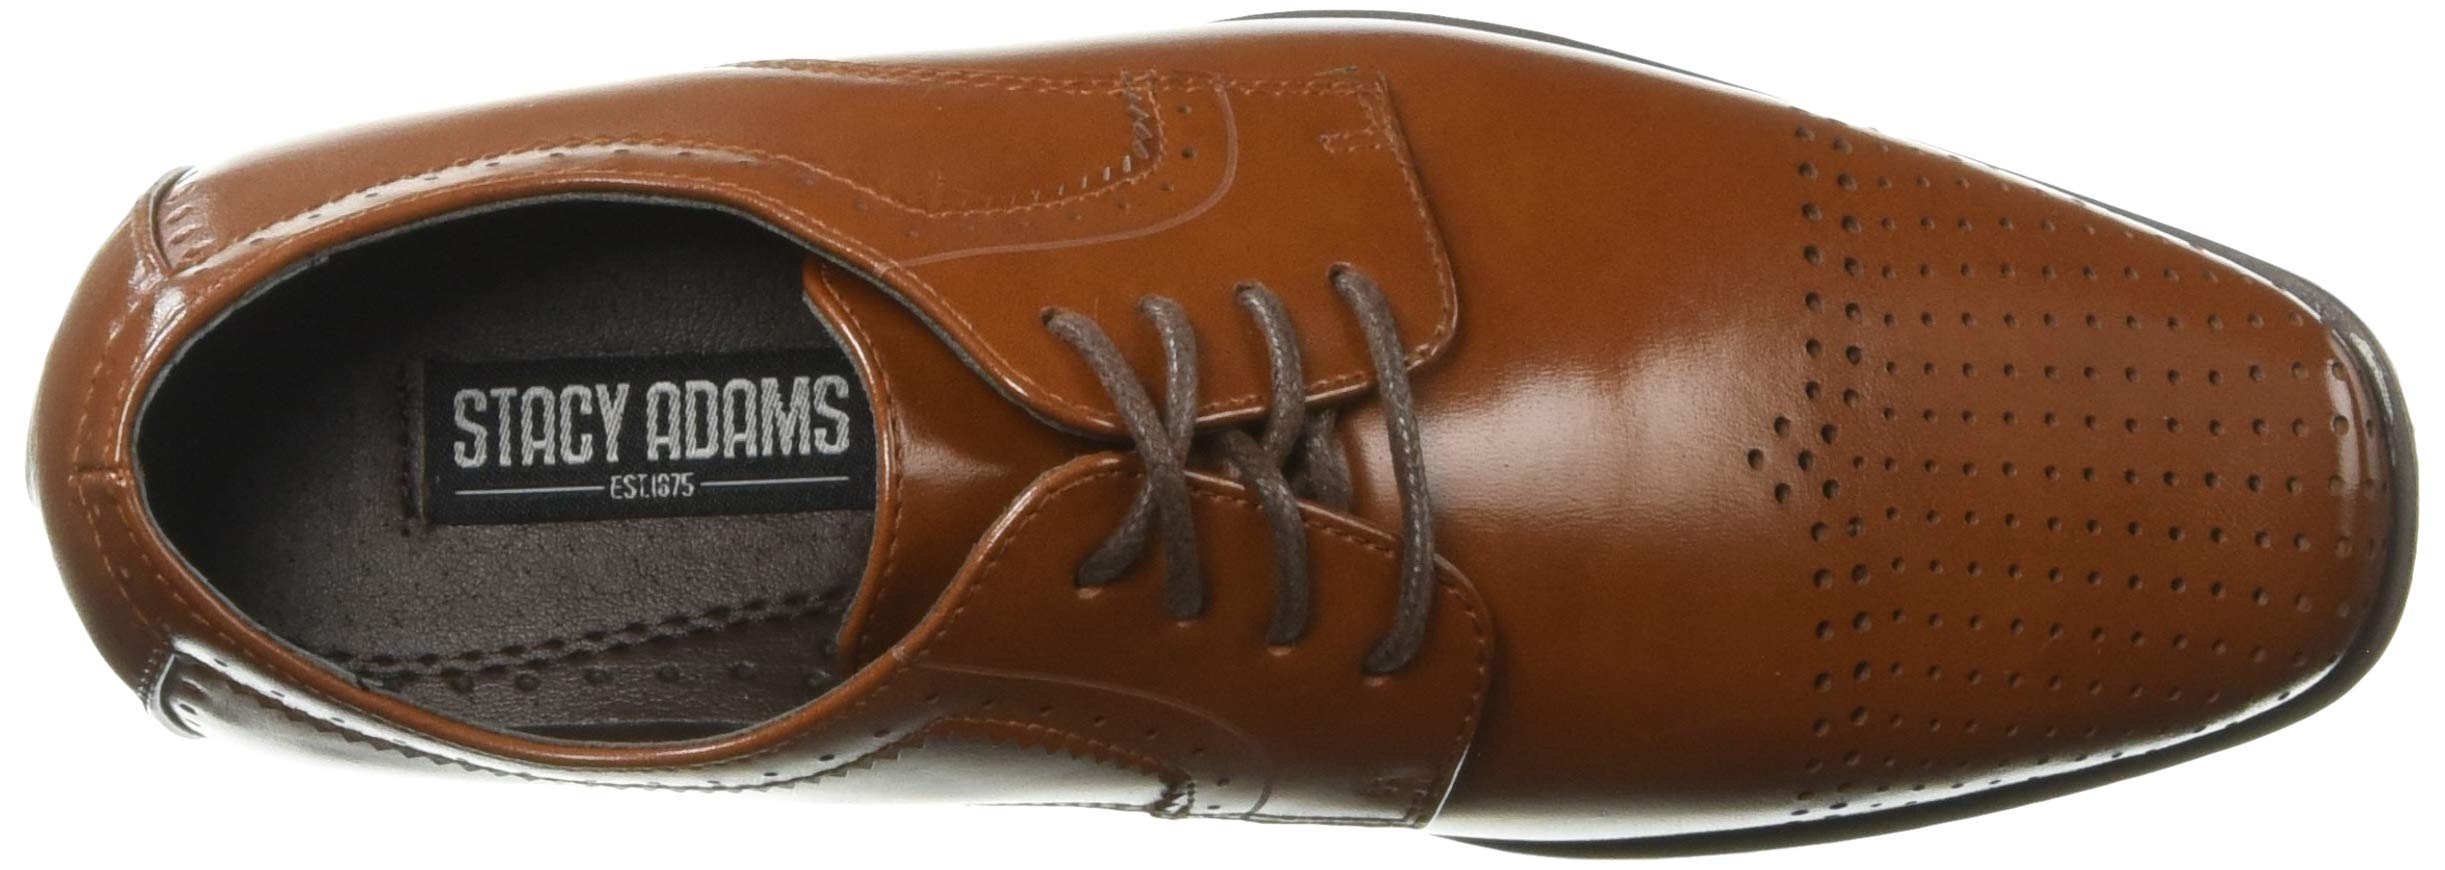 STACY ADAMS Unisex Sanborn Perfed Cap Toe Lace-Up Oxford, Cognac 5 M US Big Kid by STACY ADAMS (Image #8)